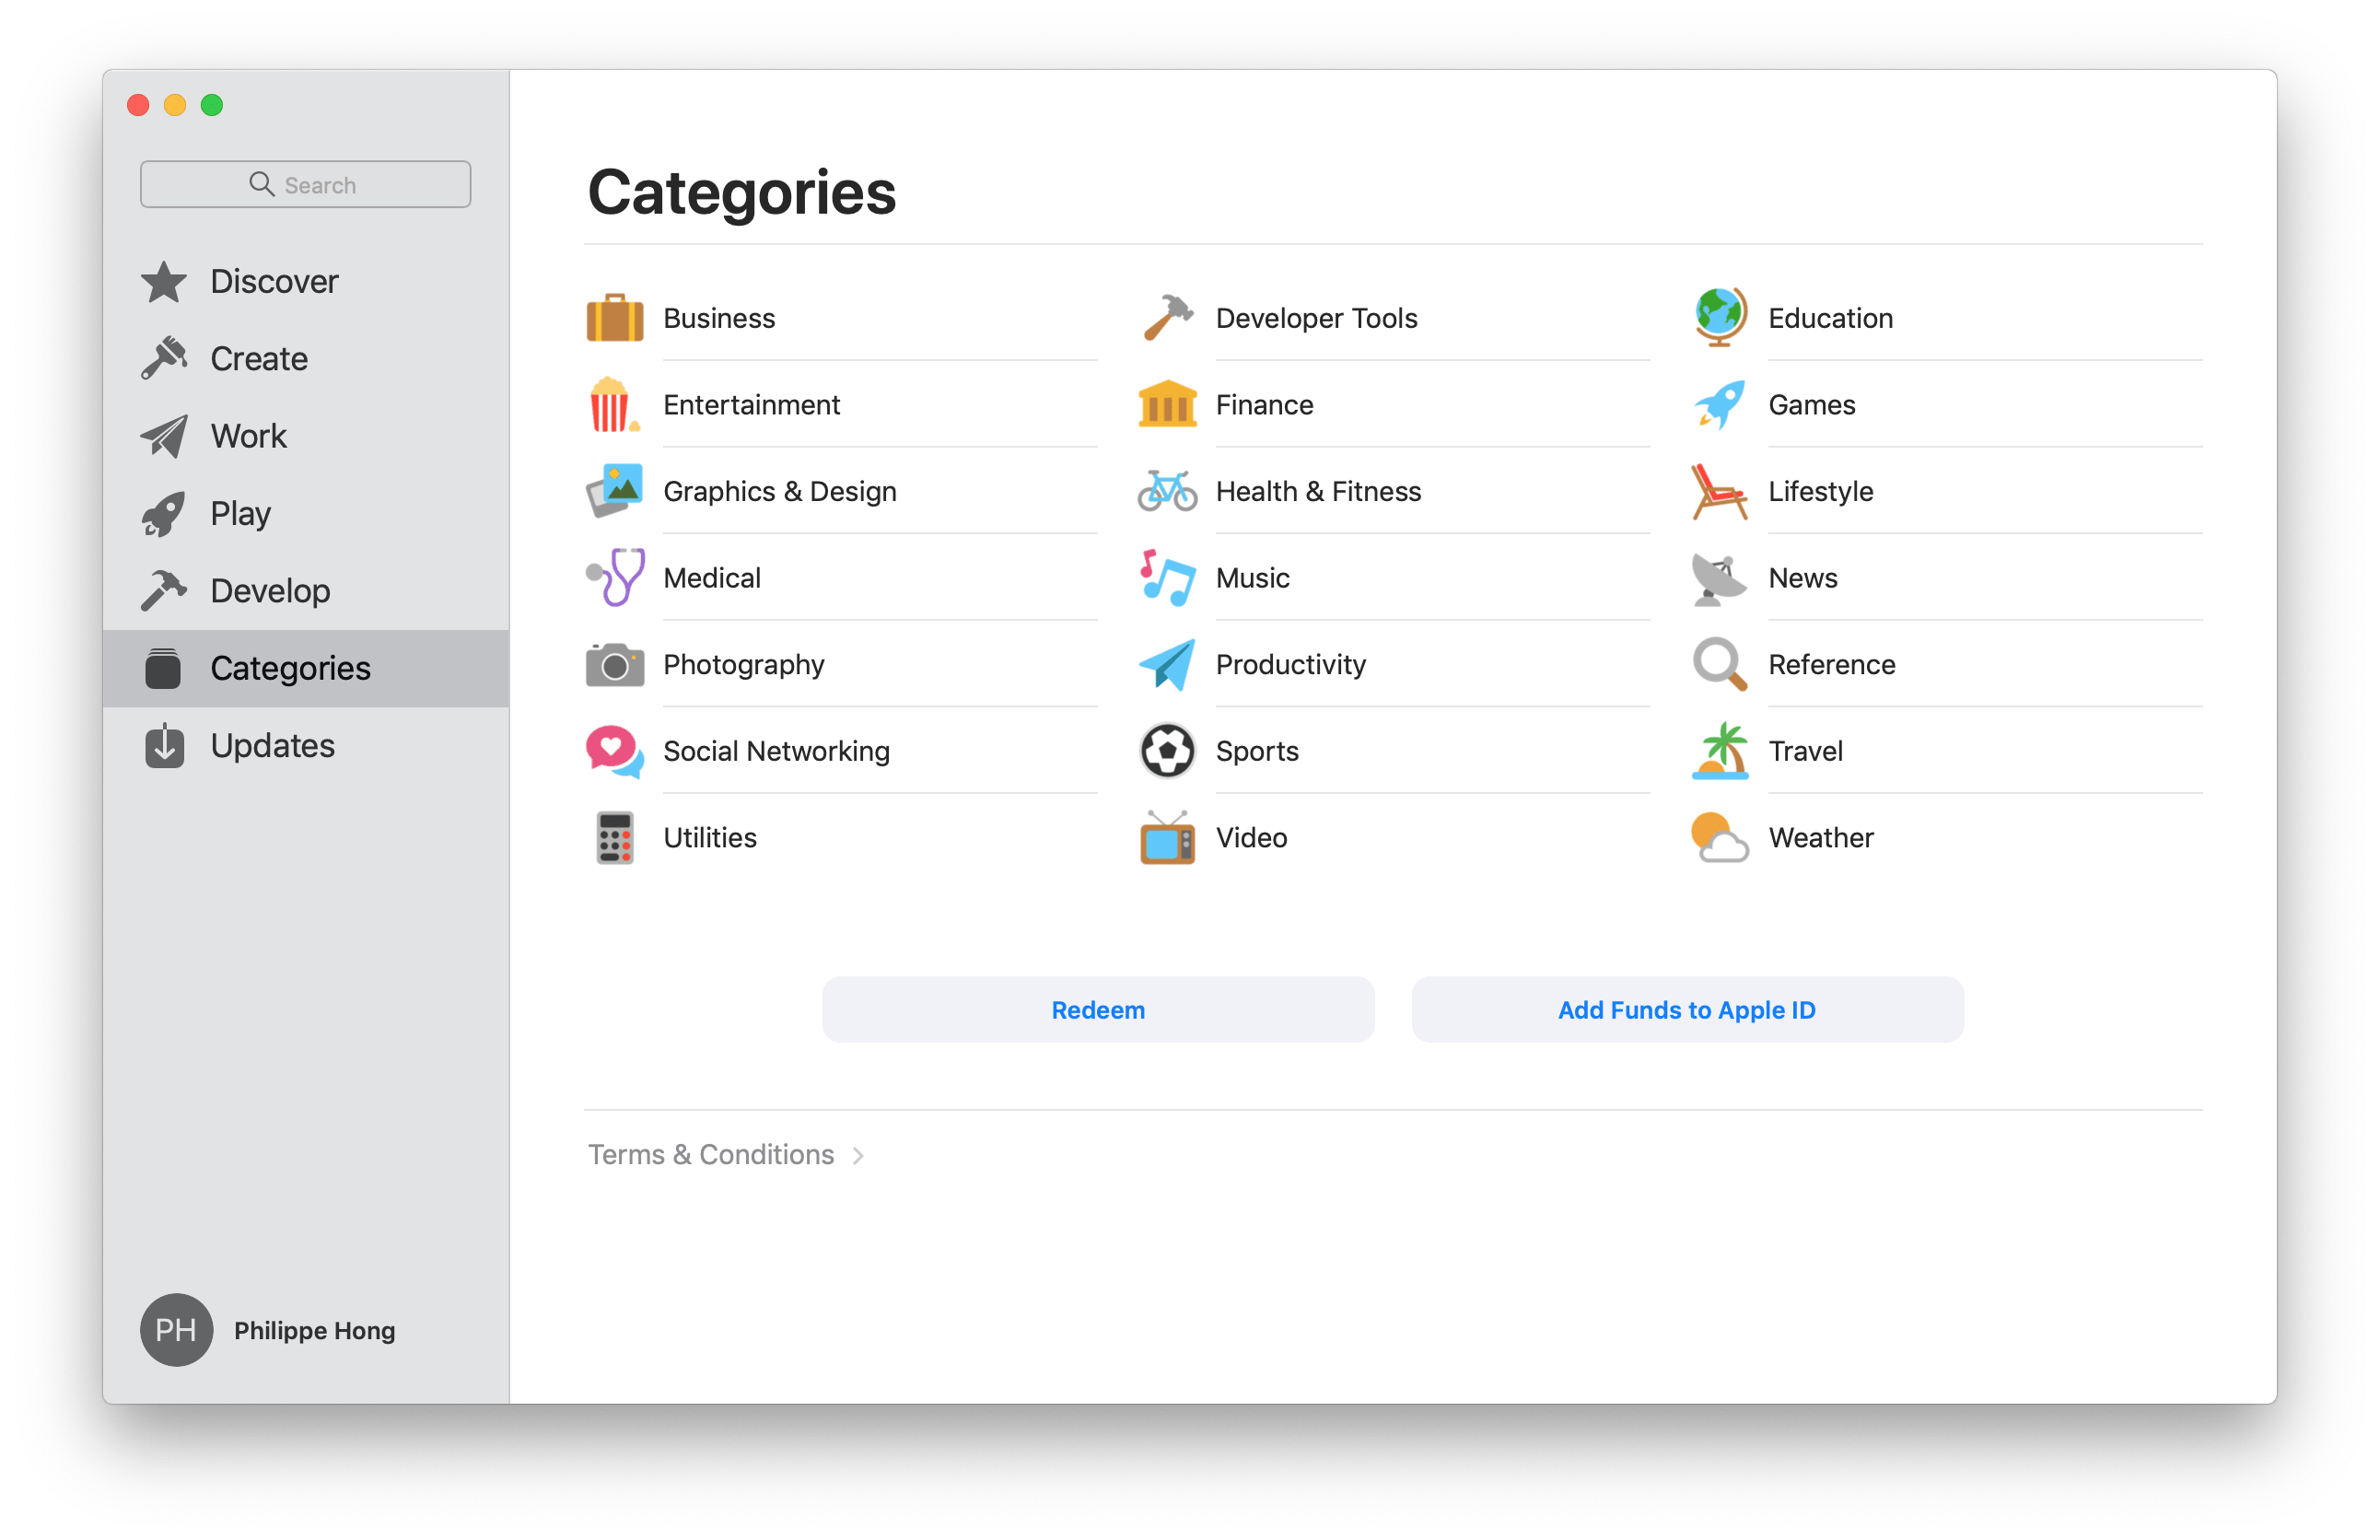 Categories by Mac App Store